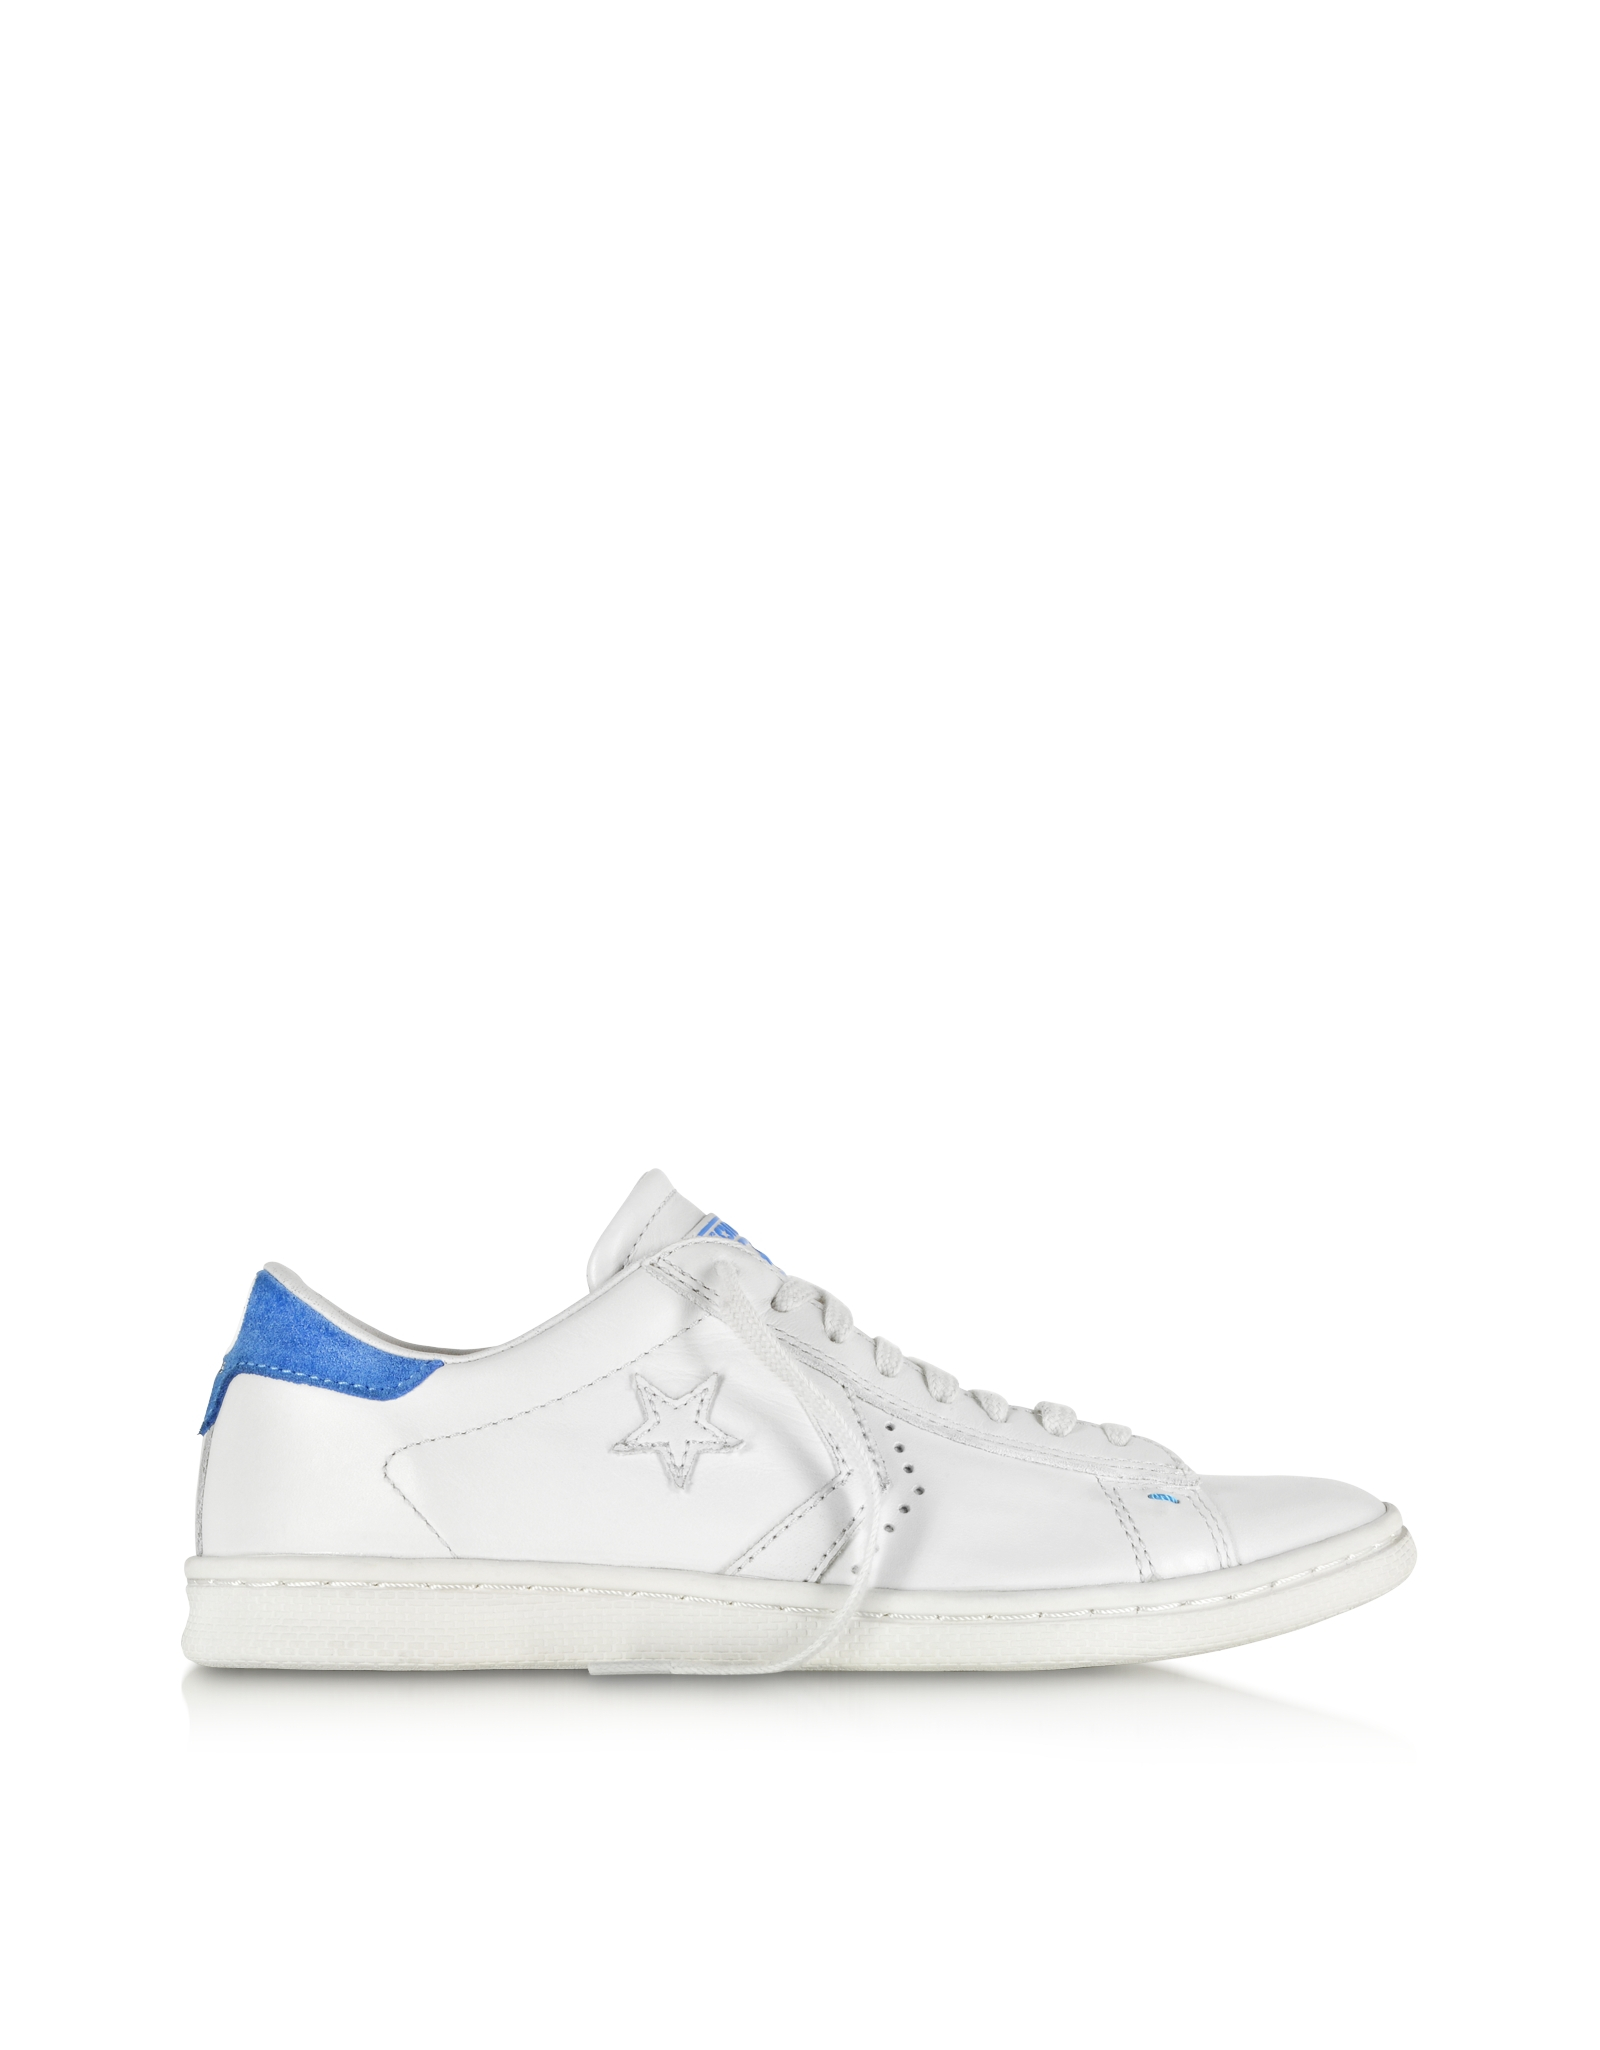 16225833b4f5c3 Lyst - Converse Cons Pro Leather Lp Ox White Dust And Light Blue Sneaker in  White for Men